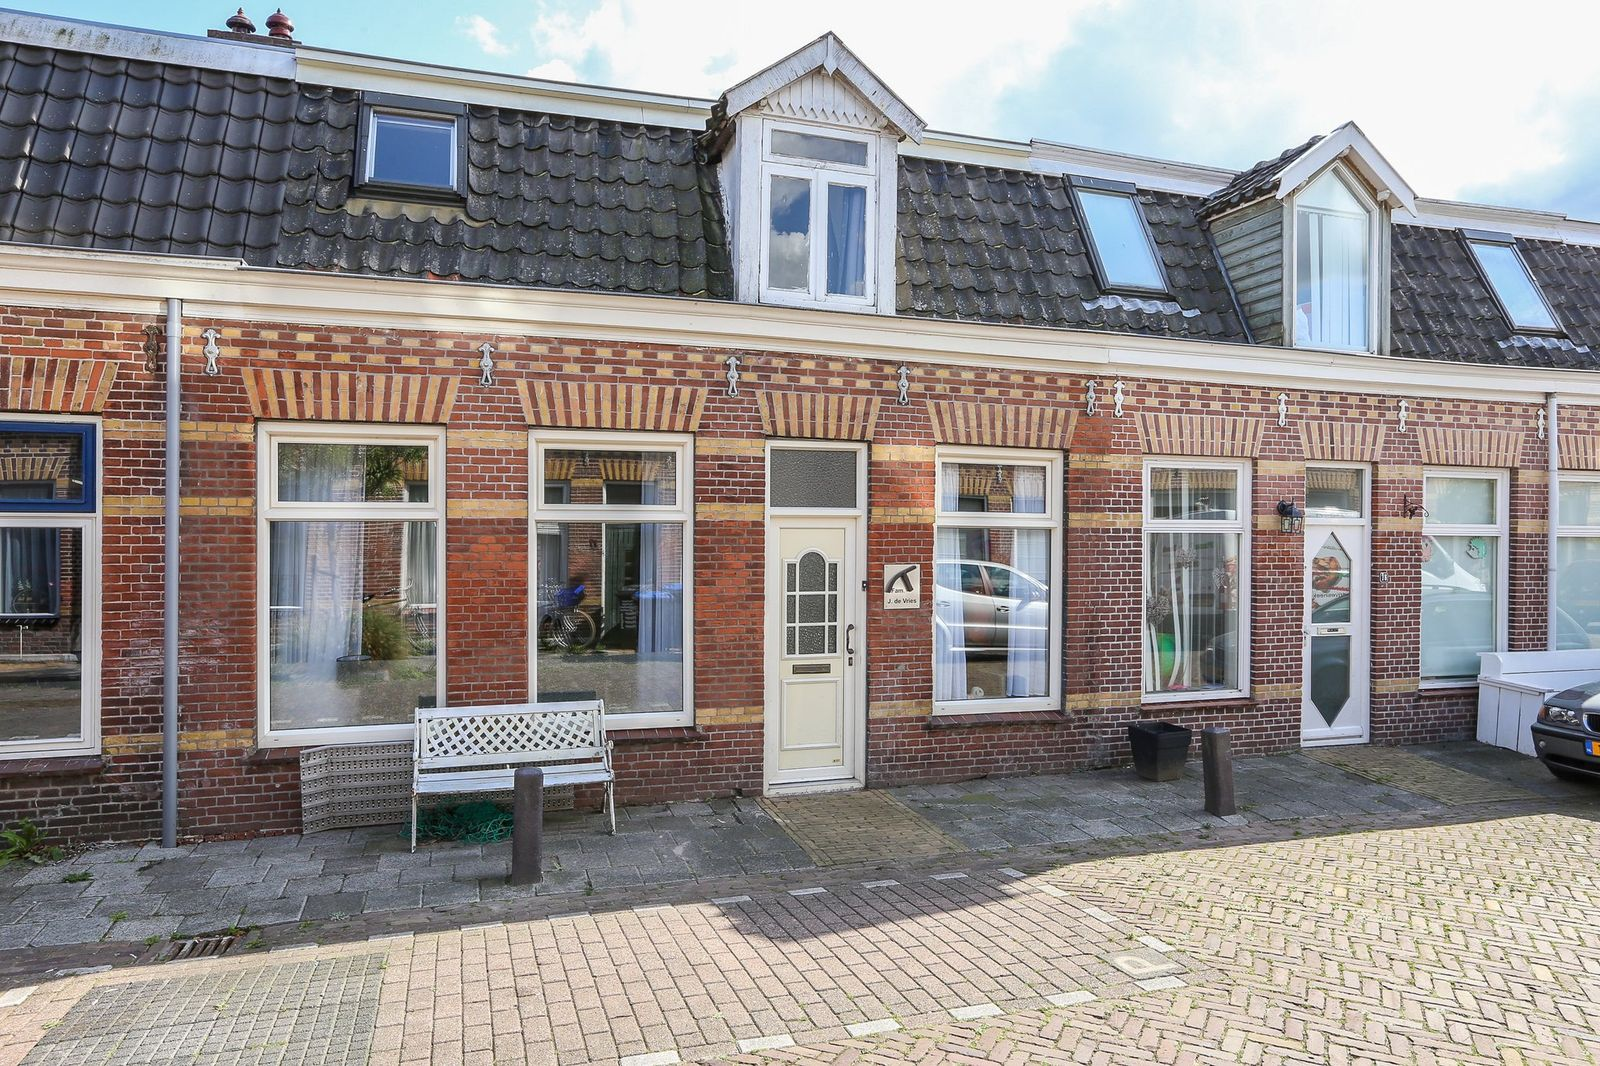 2e Woudstraat 18, Sneek